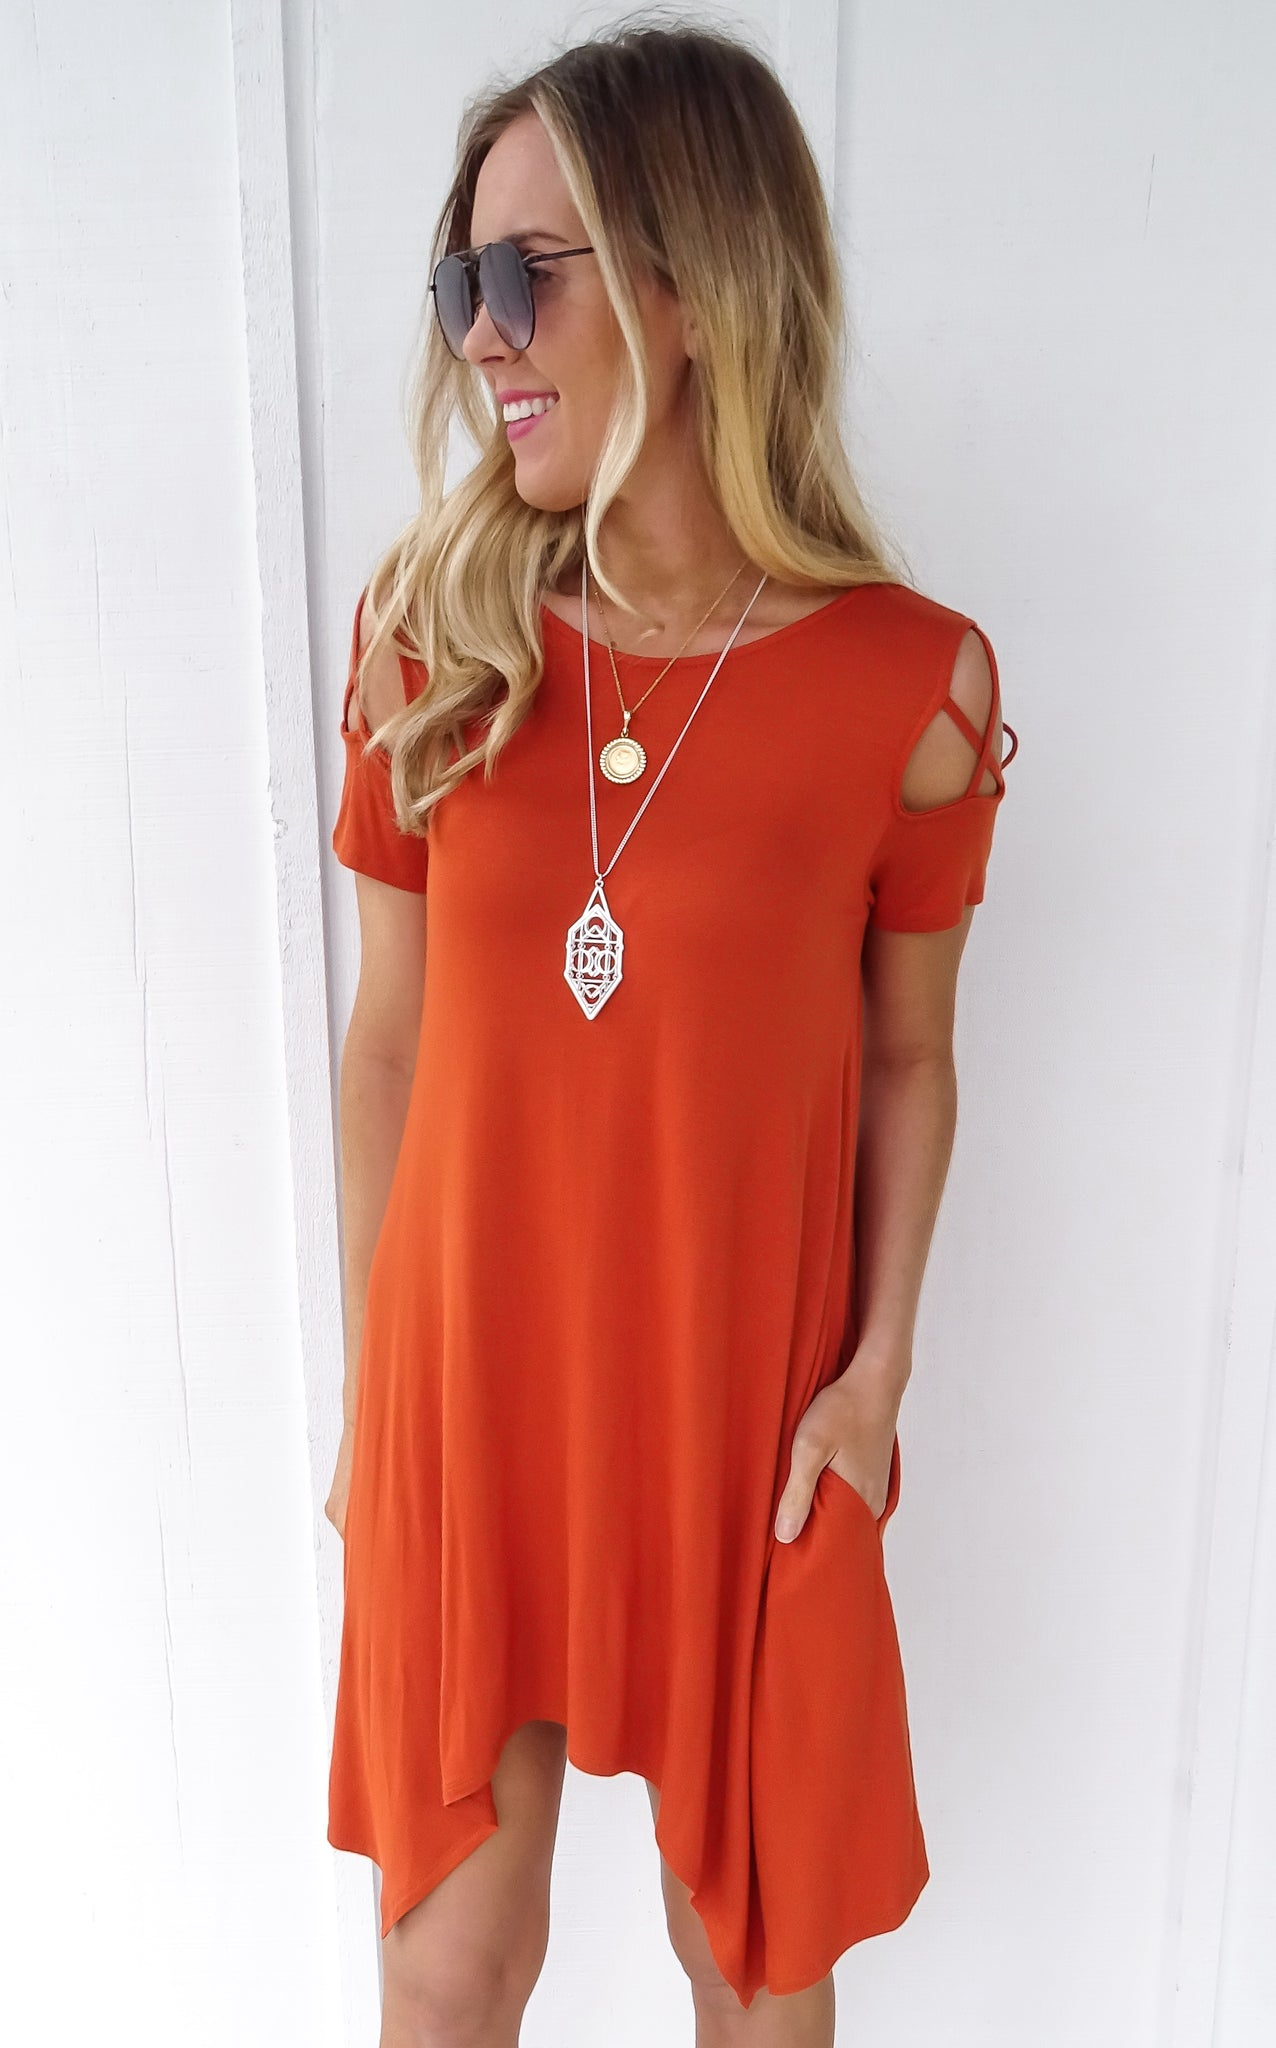 WEBBED SLEEVE SWING DRESS - ORANGE